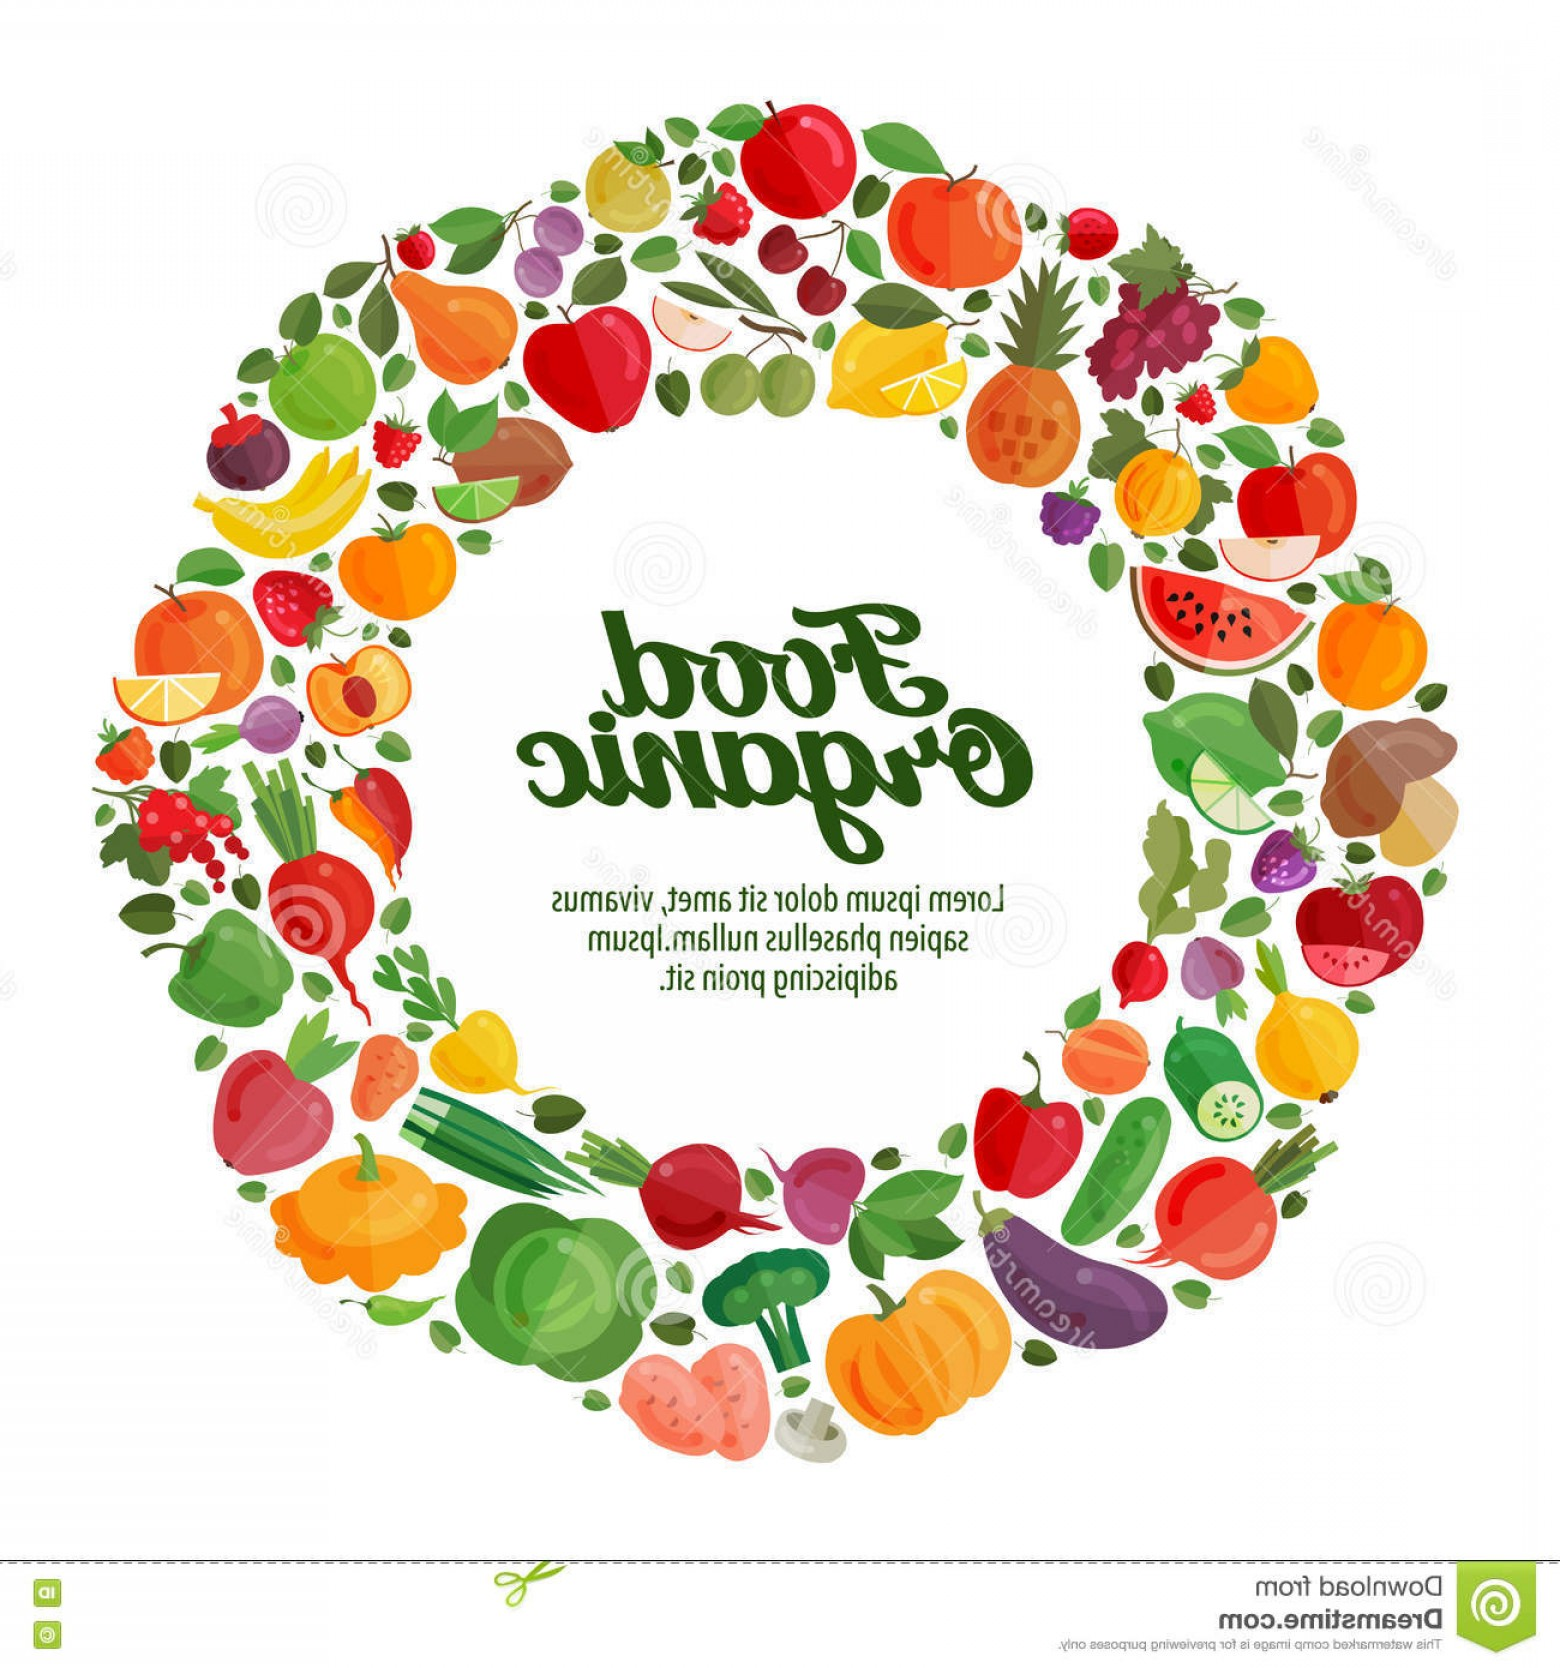 Vector Fruit Vegetable: Stock Illustration Vector Fruit Vegetable Icons Organic Food Concept Template Brochure Flyer Image